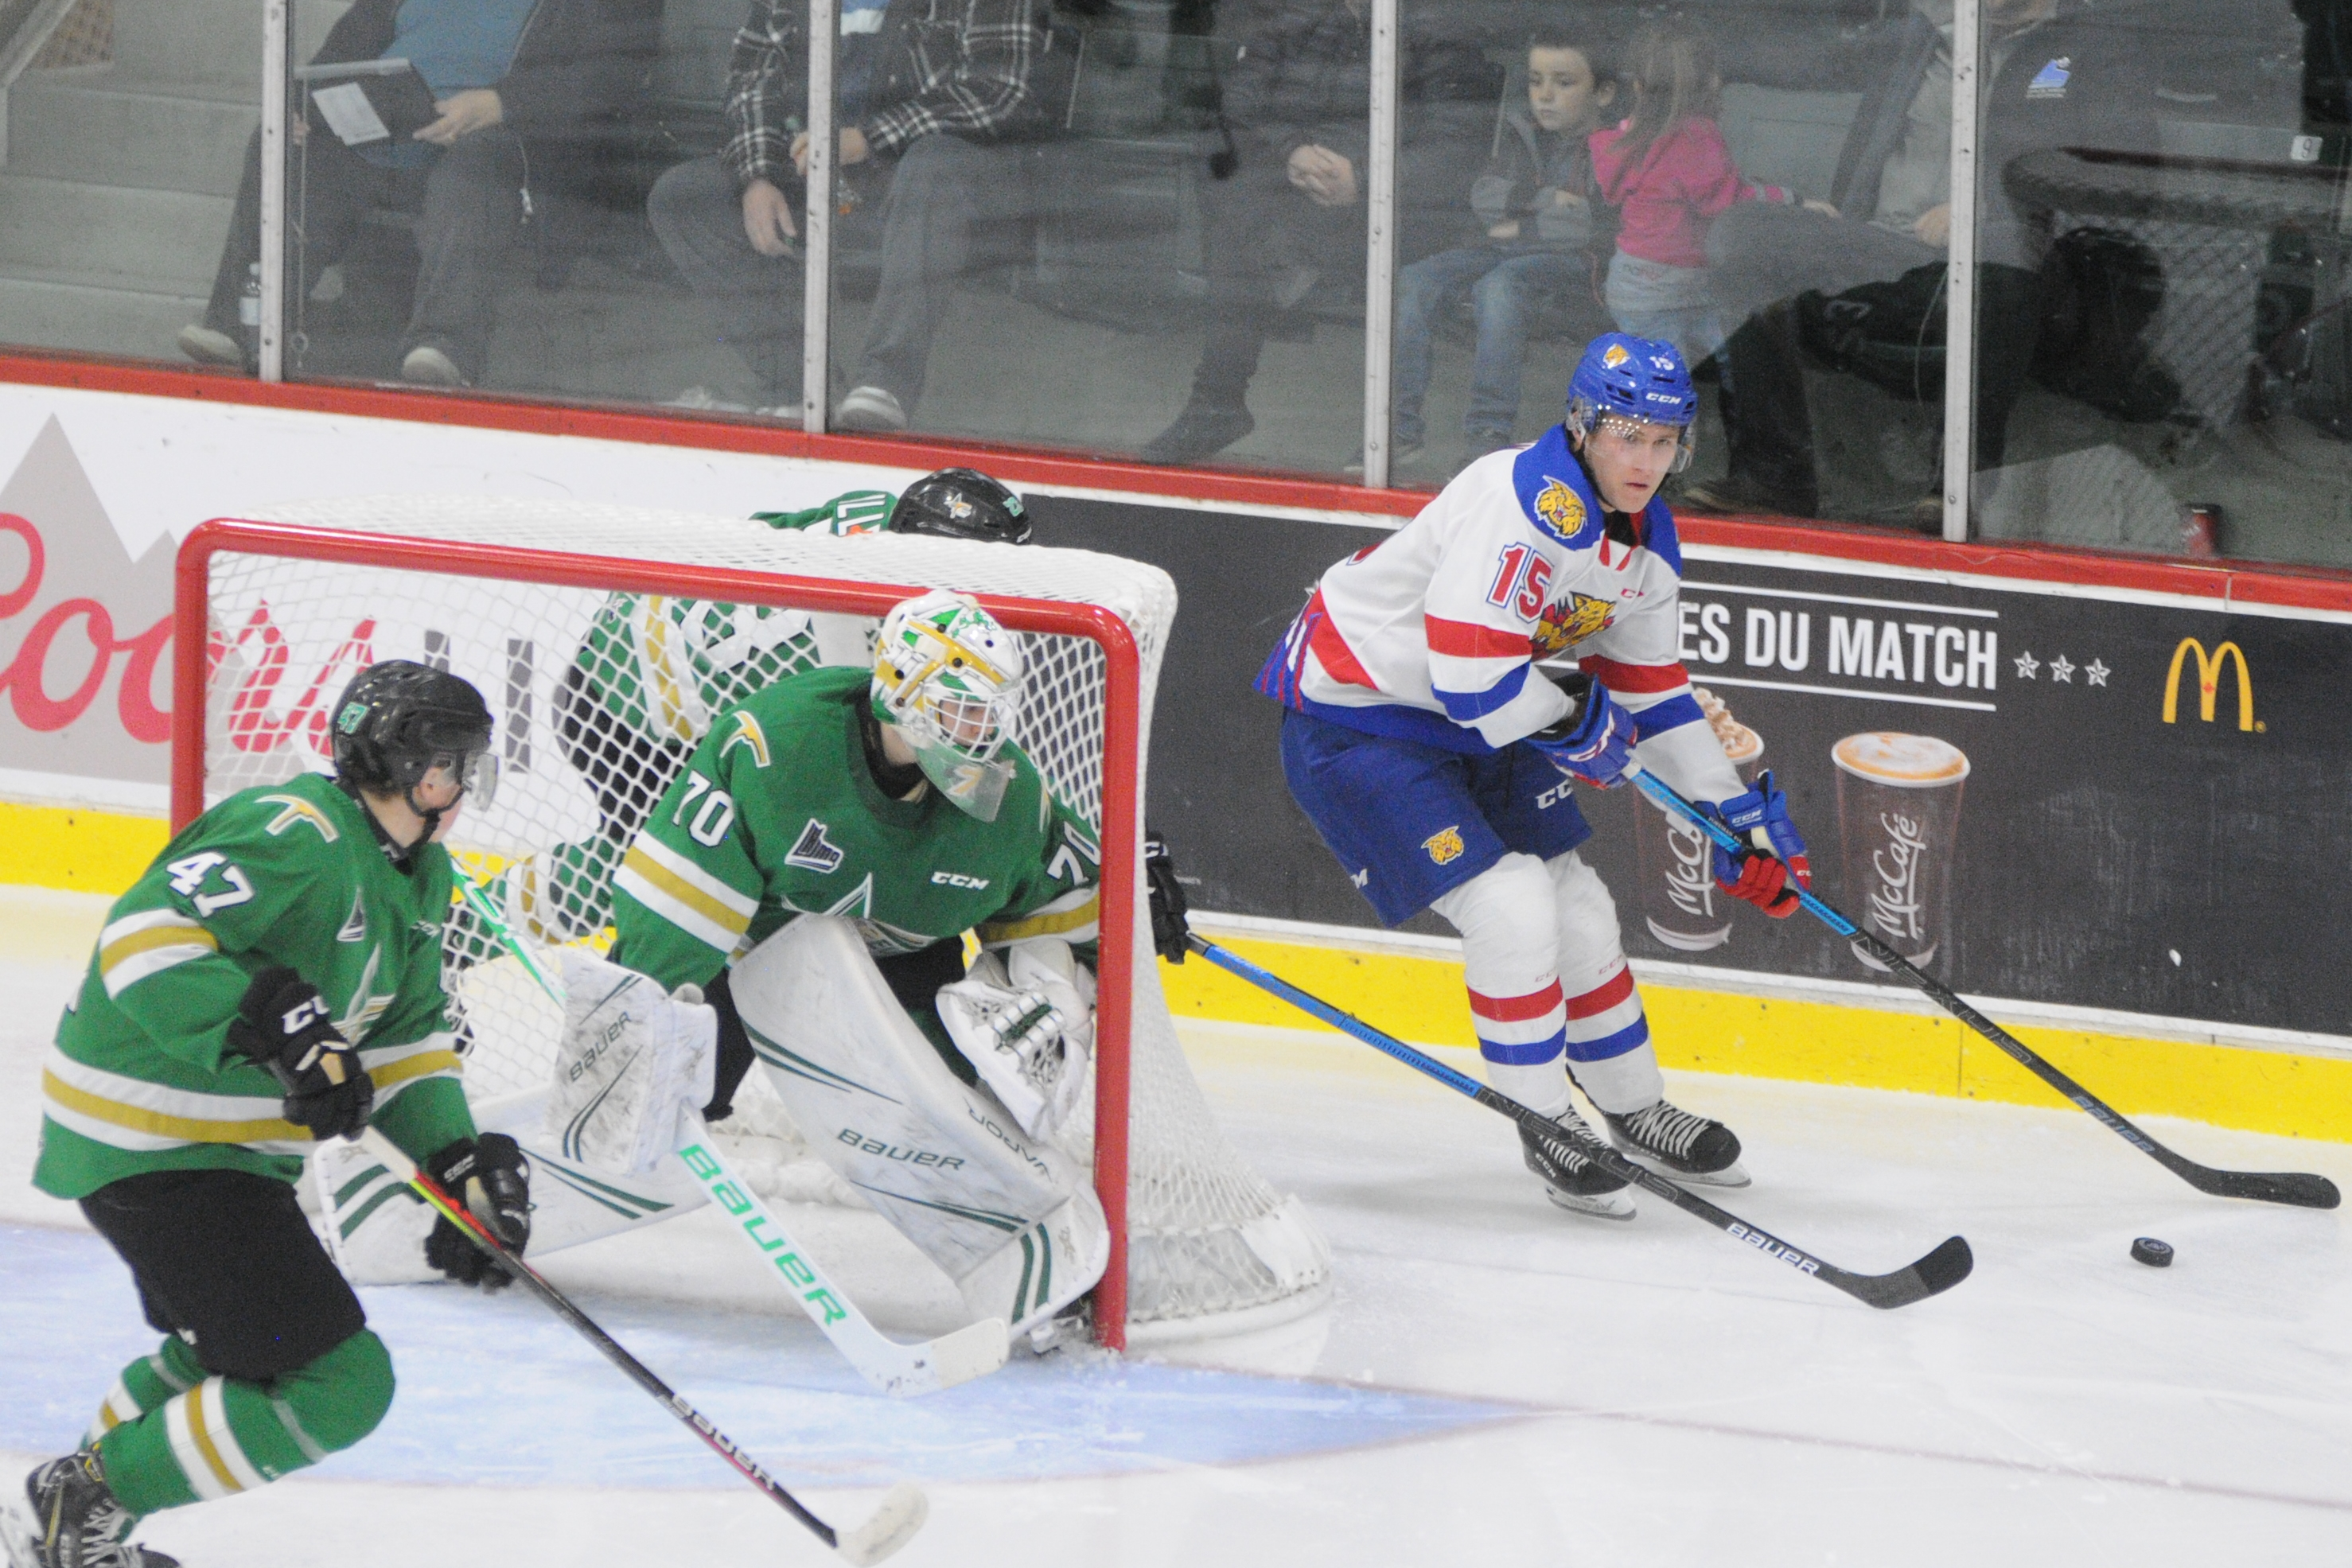 Wildcats Moncton - Foreurs Val-d'Or